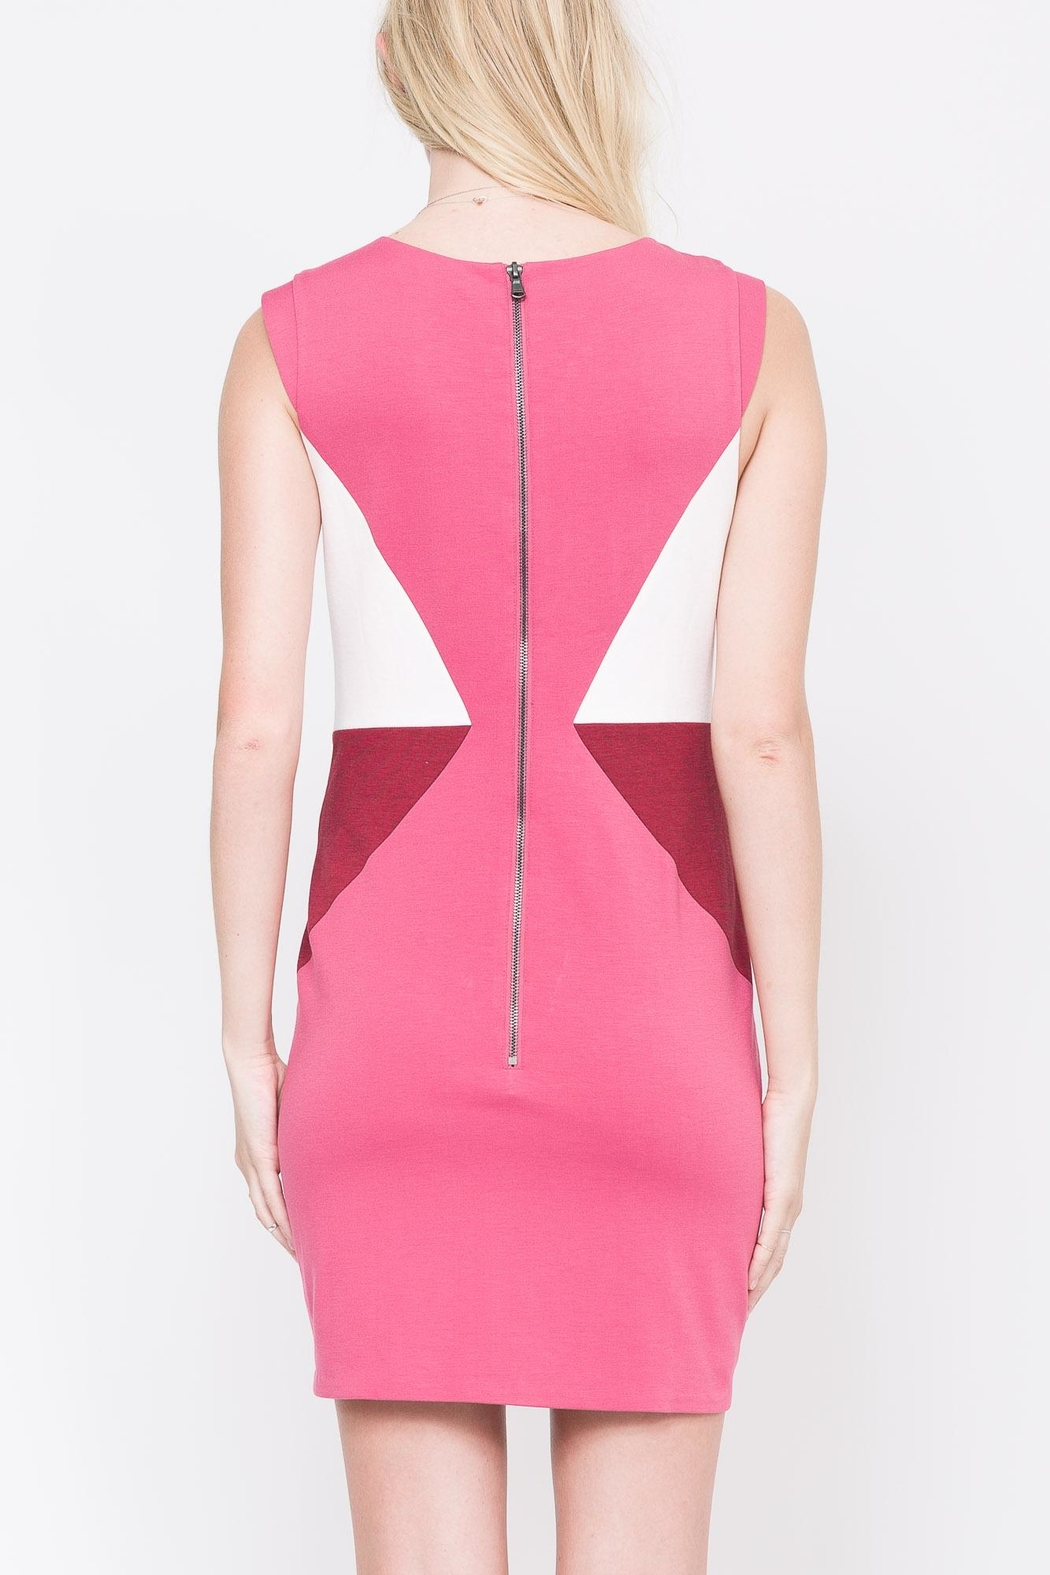 QUINN Nerissa Color-Blocked Dress - Side Cropped Image